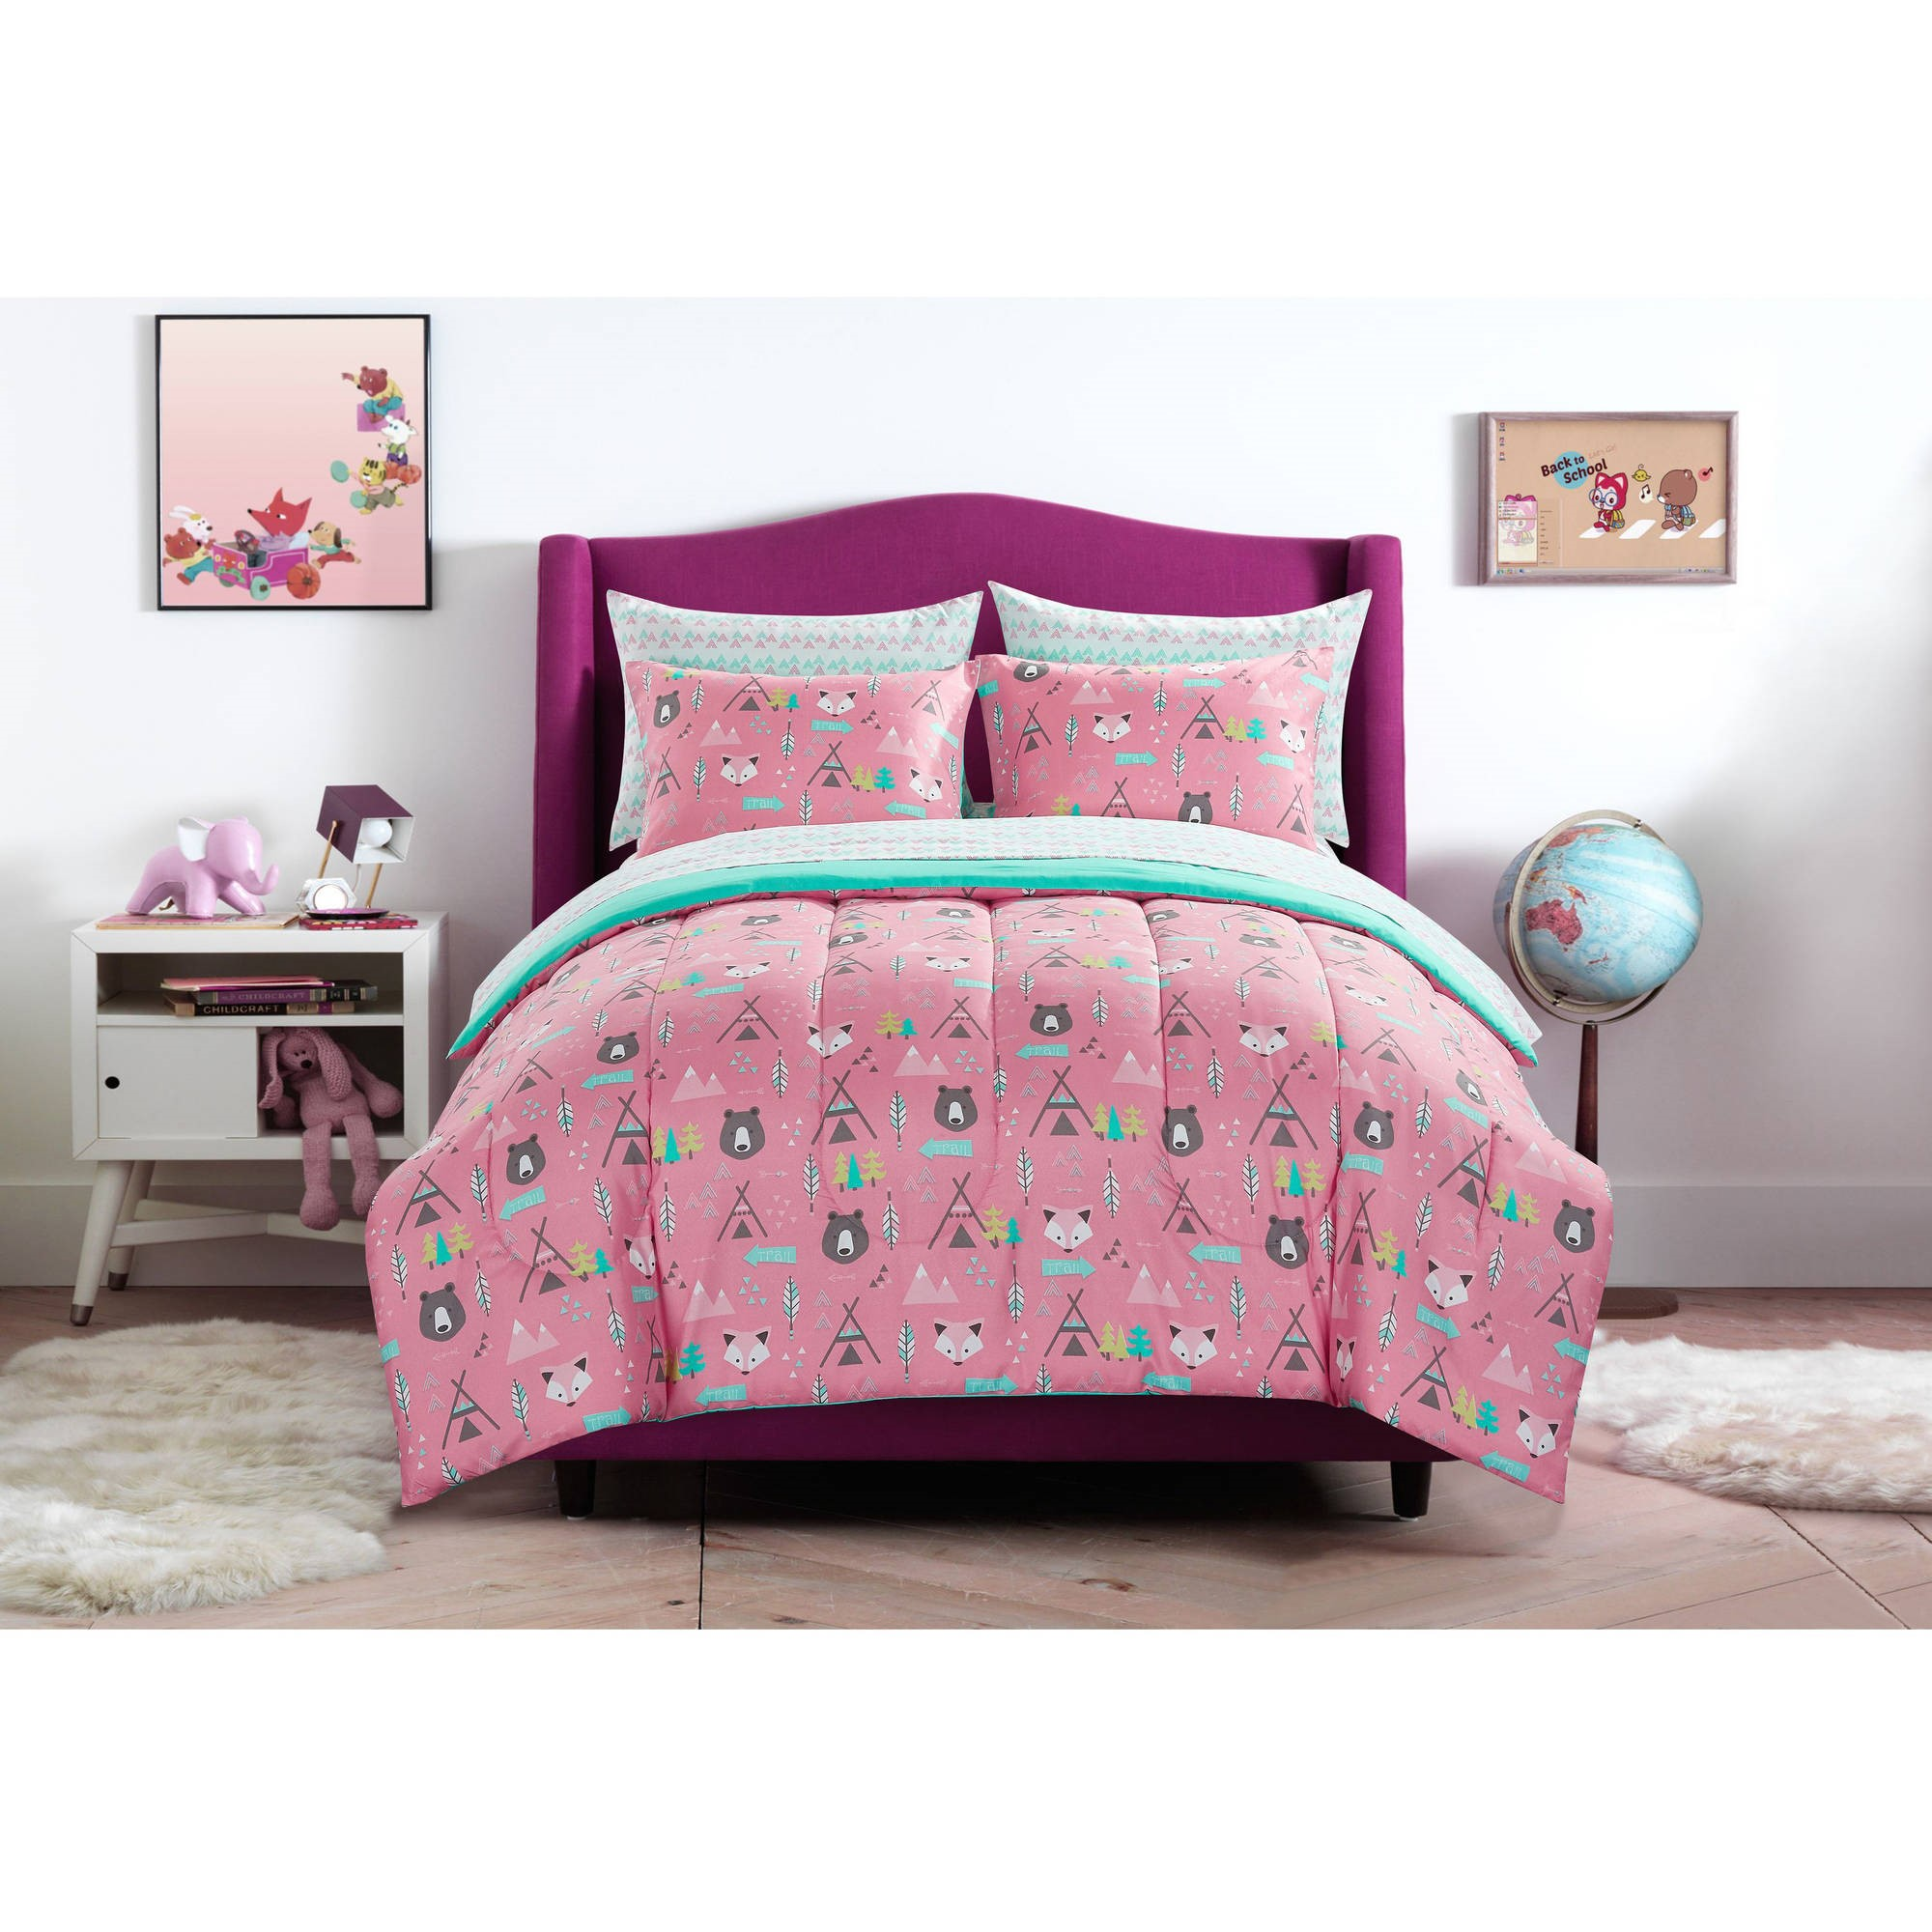 Mainstays Kids Woodland Safari Girl Bed In A Bag Bedding Set